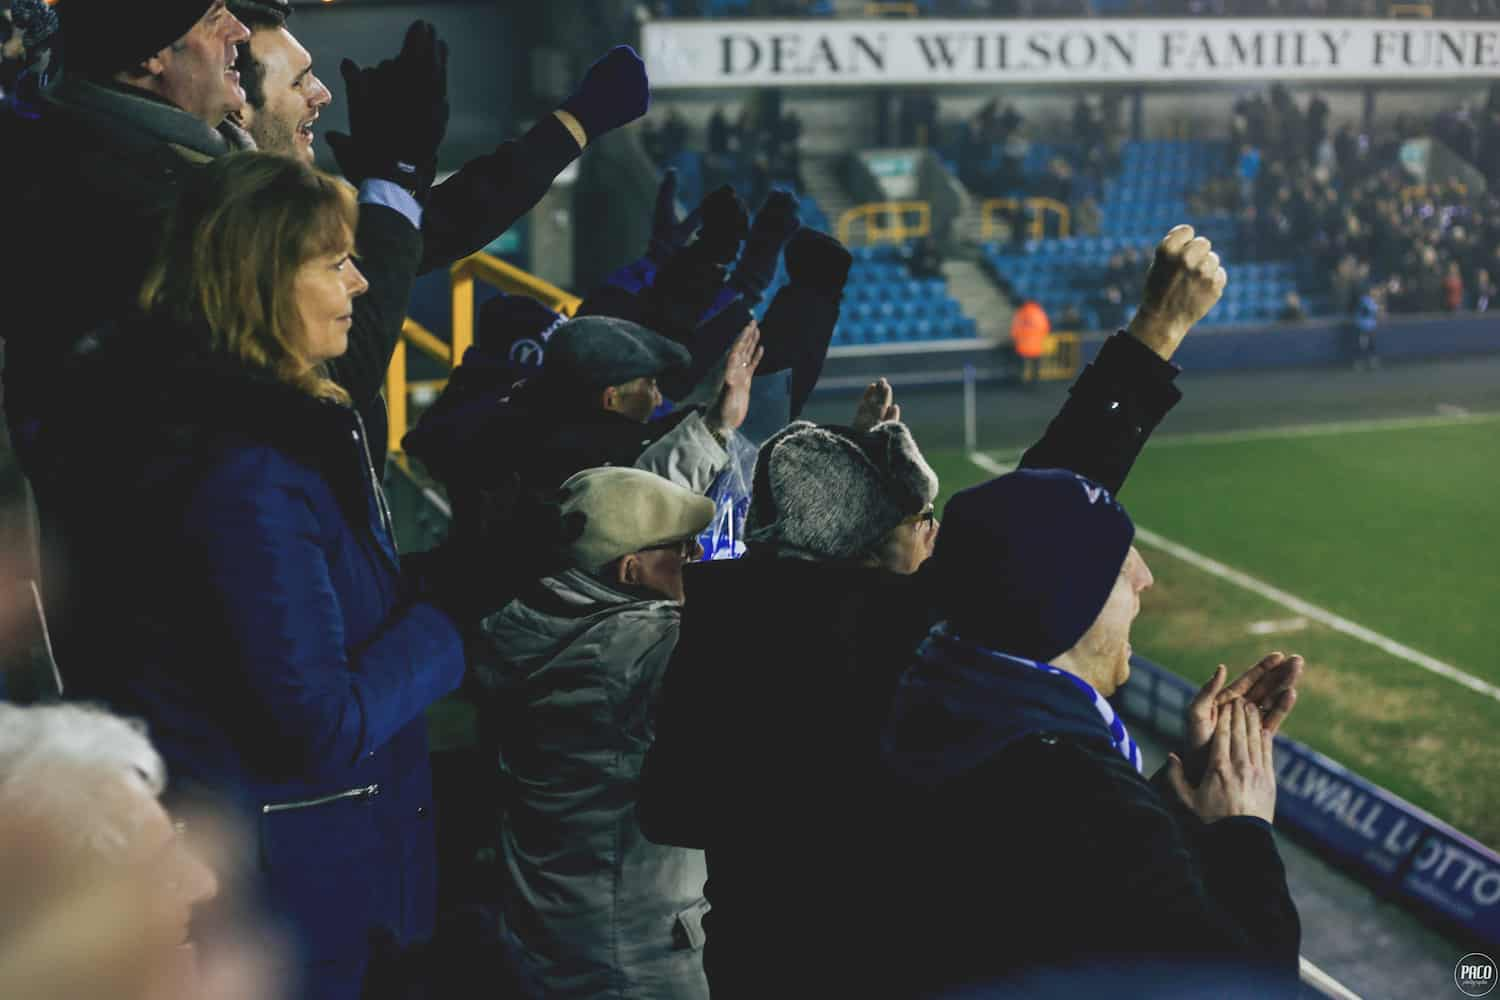 au-stade-the-den-millwall-fc-img3